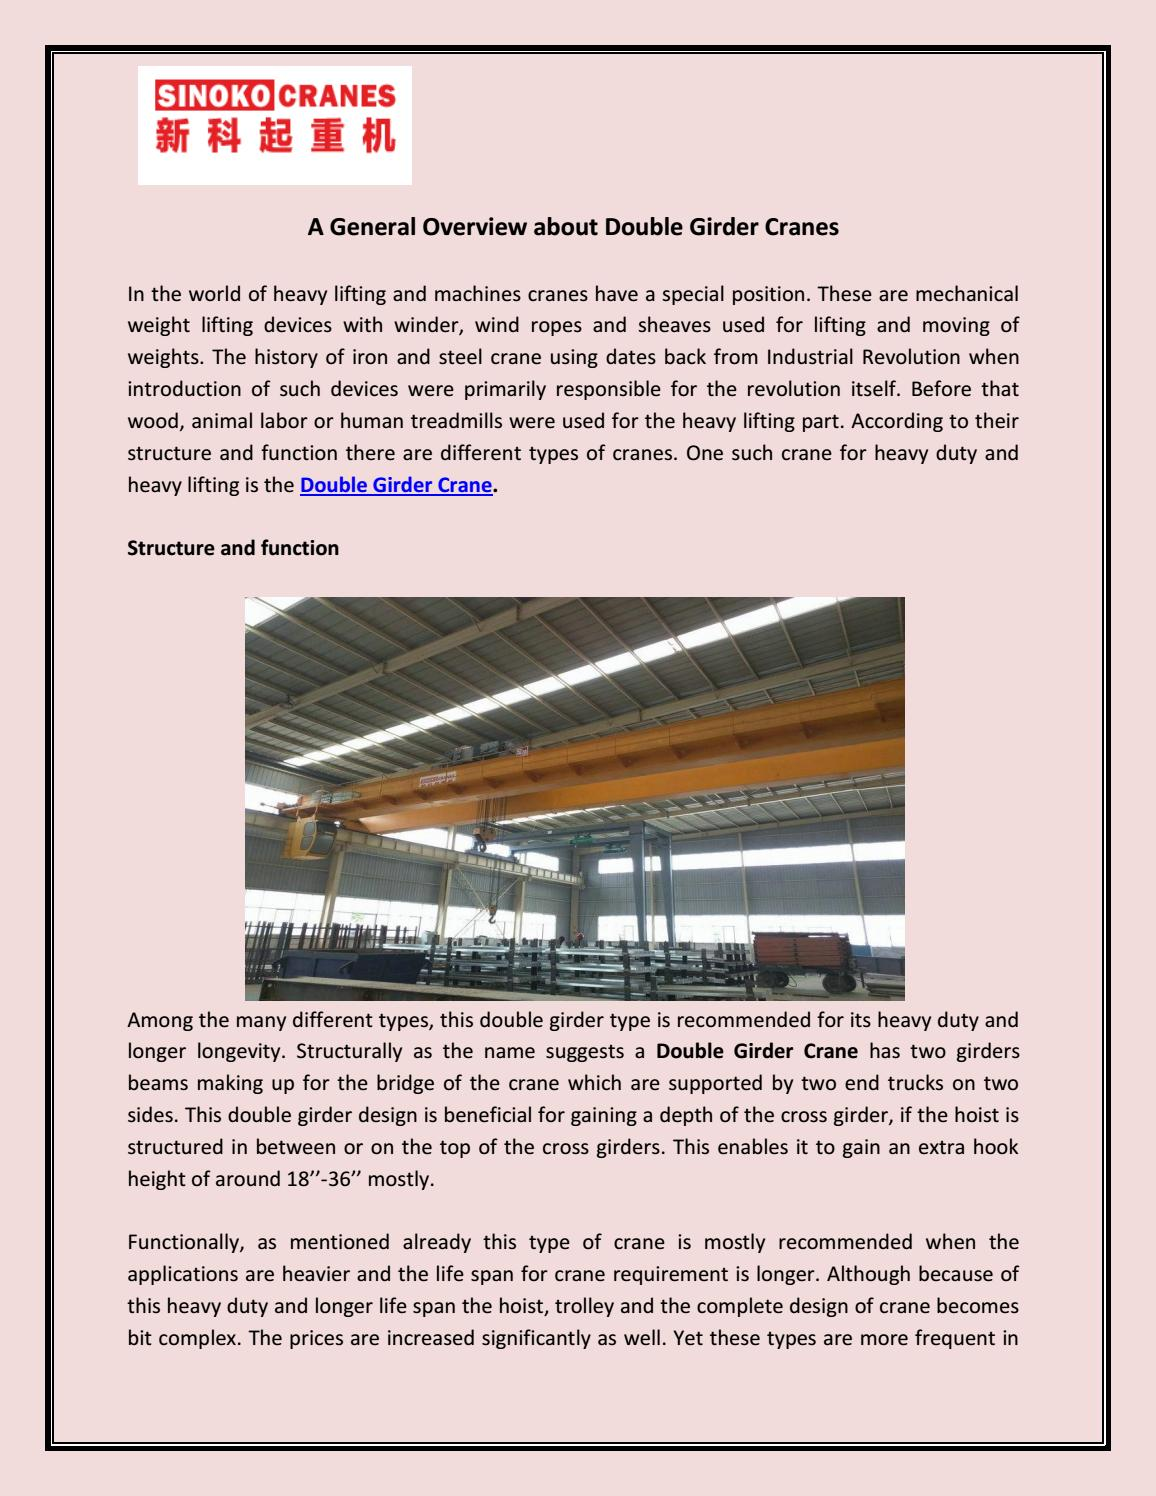 A General Overview about Double Girder Cranes by Henan